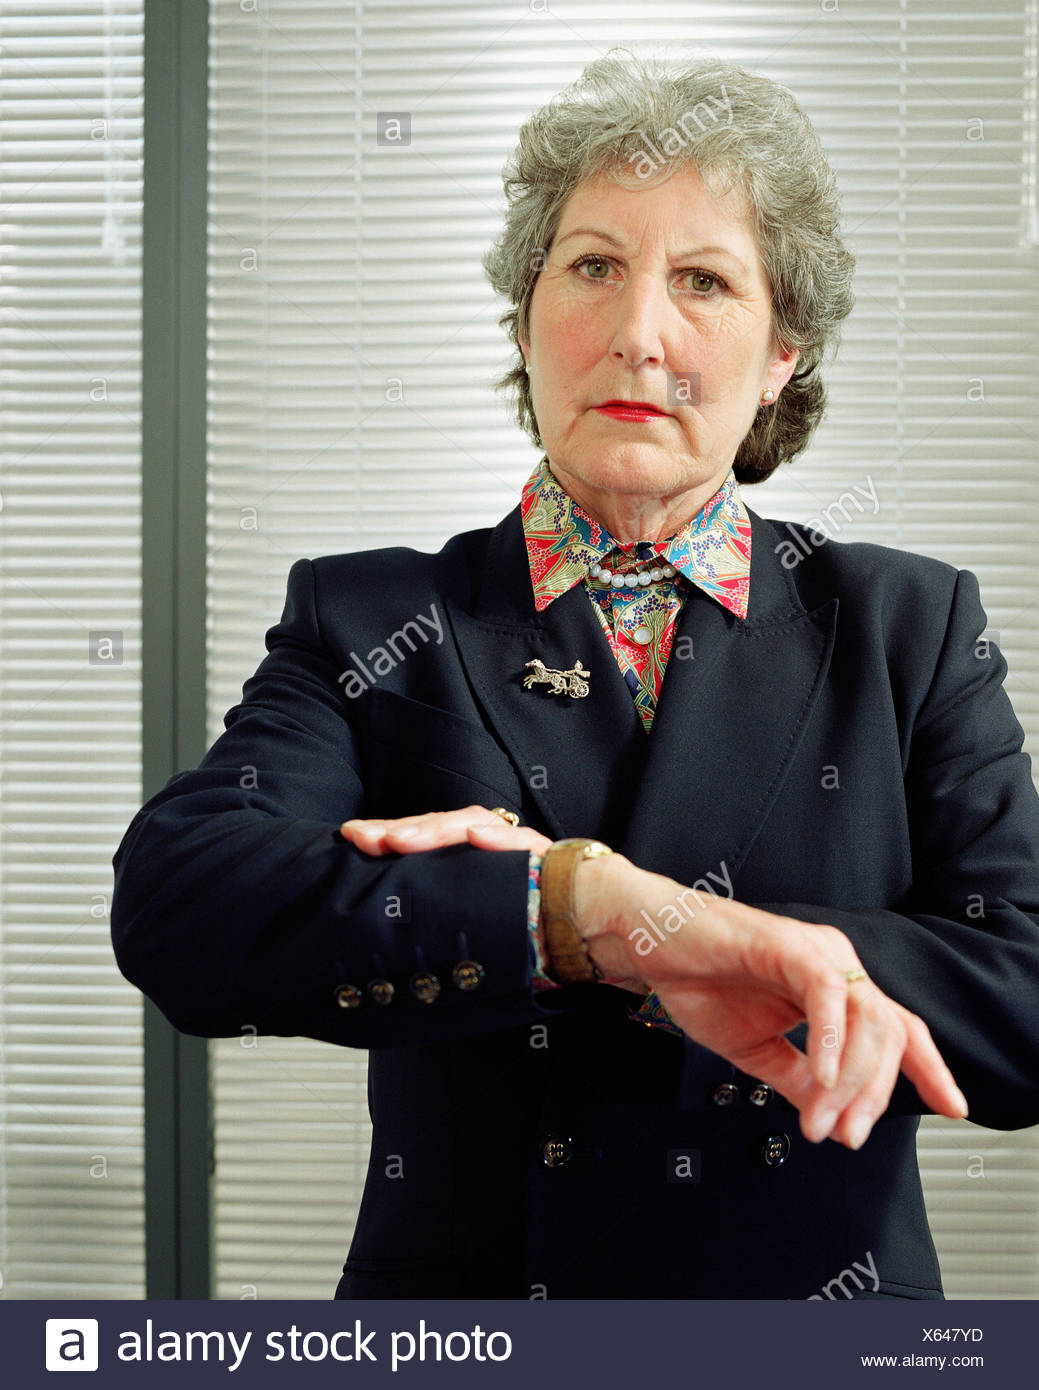 Businesswoman looking at watch Photo Stock